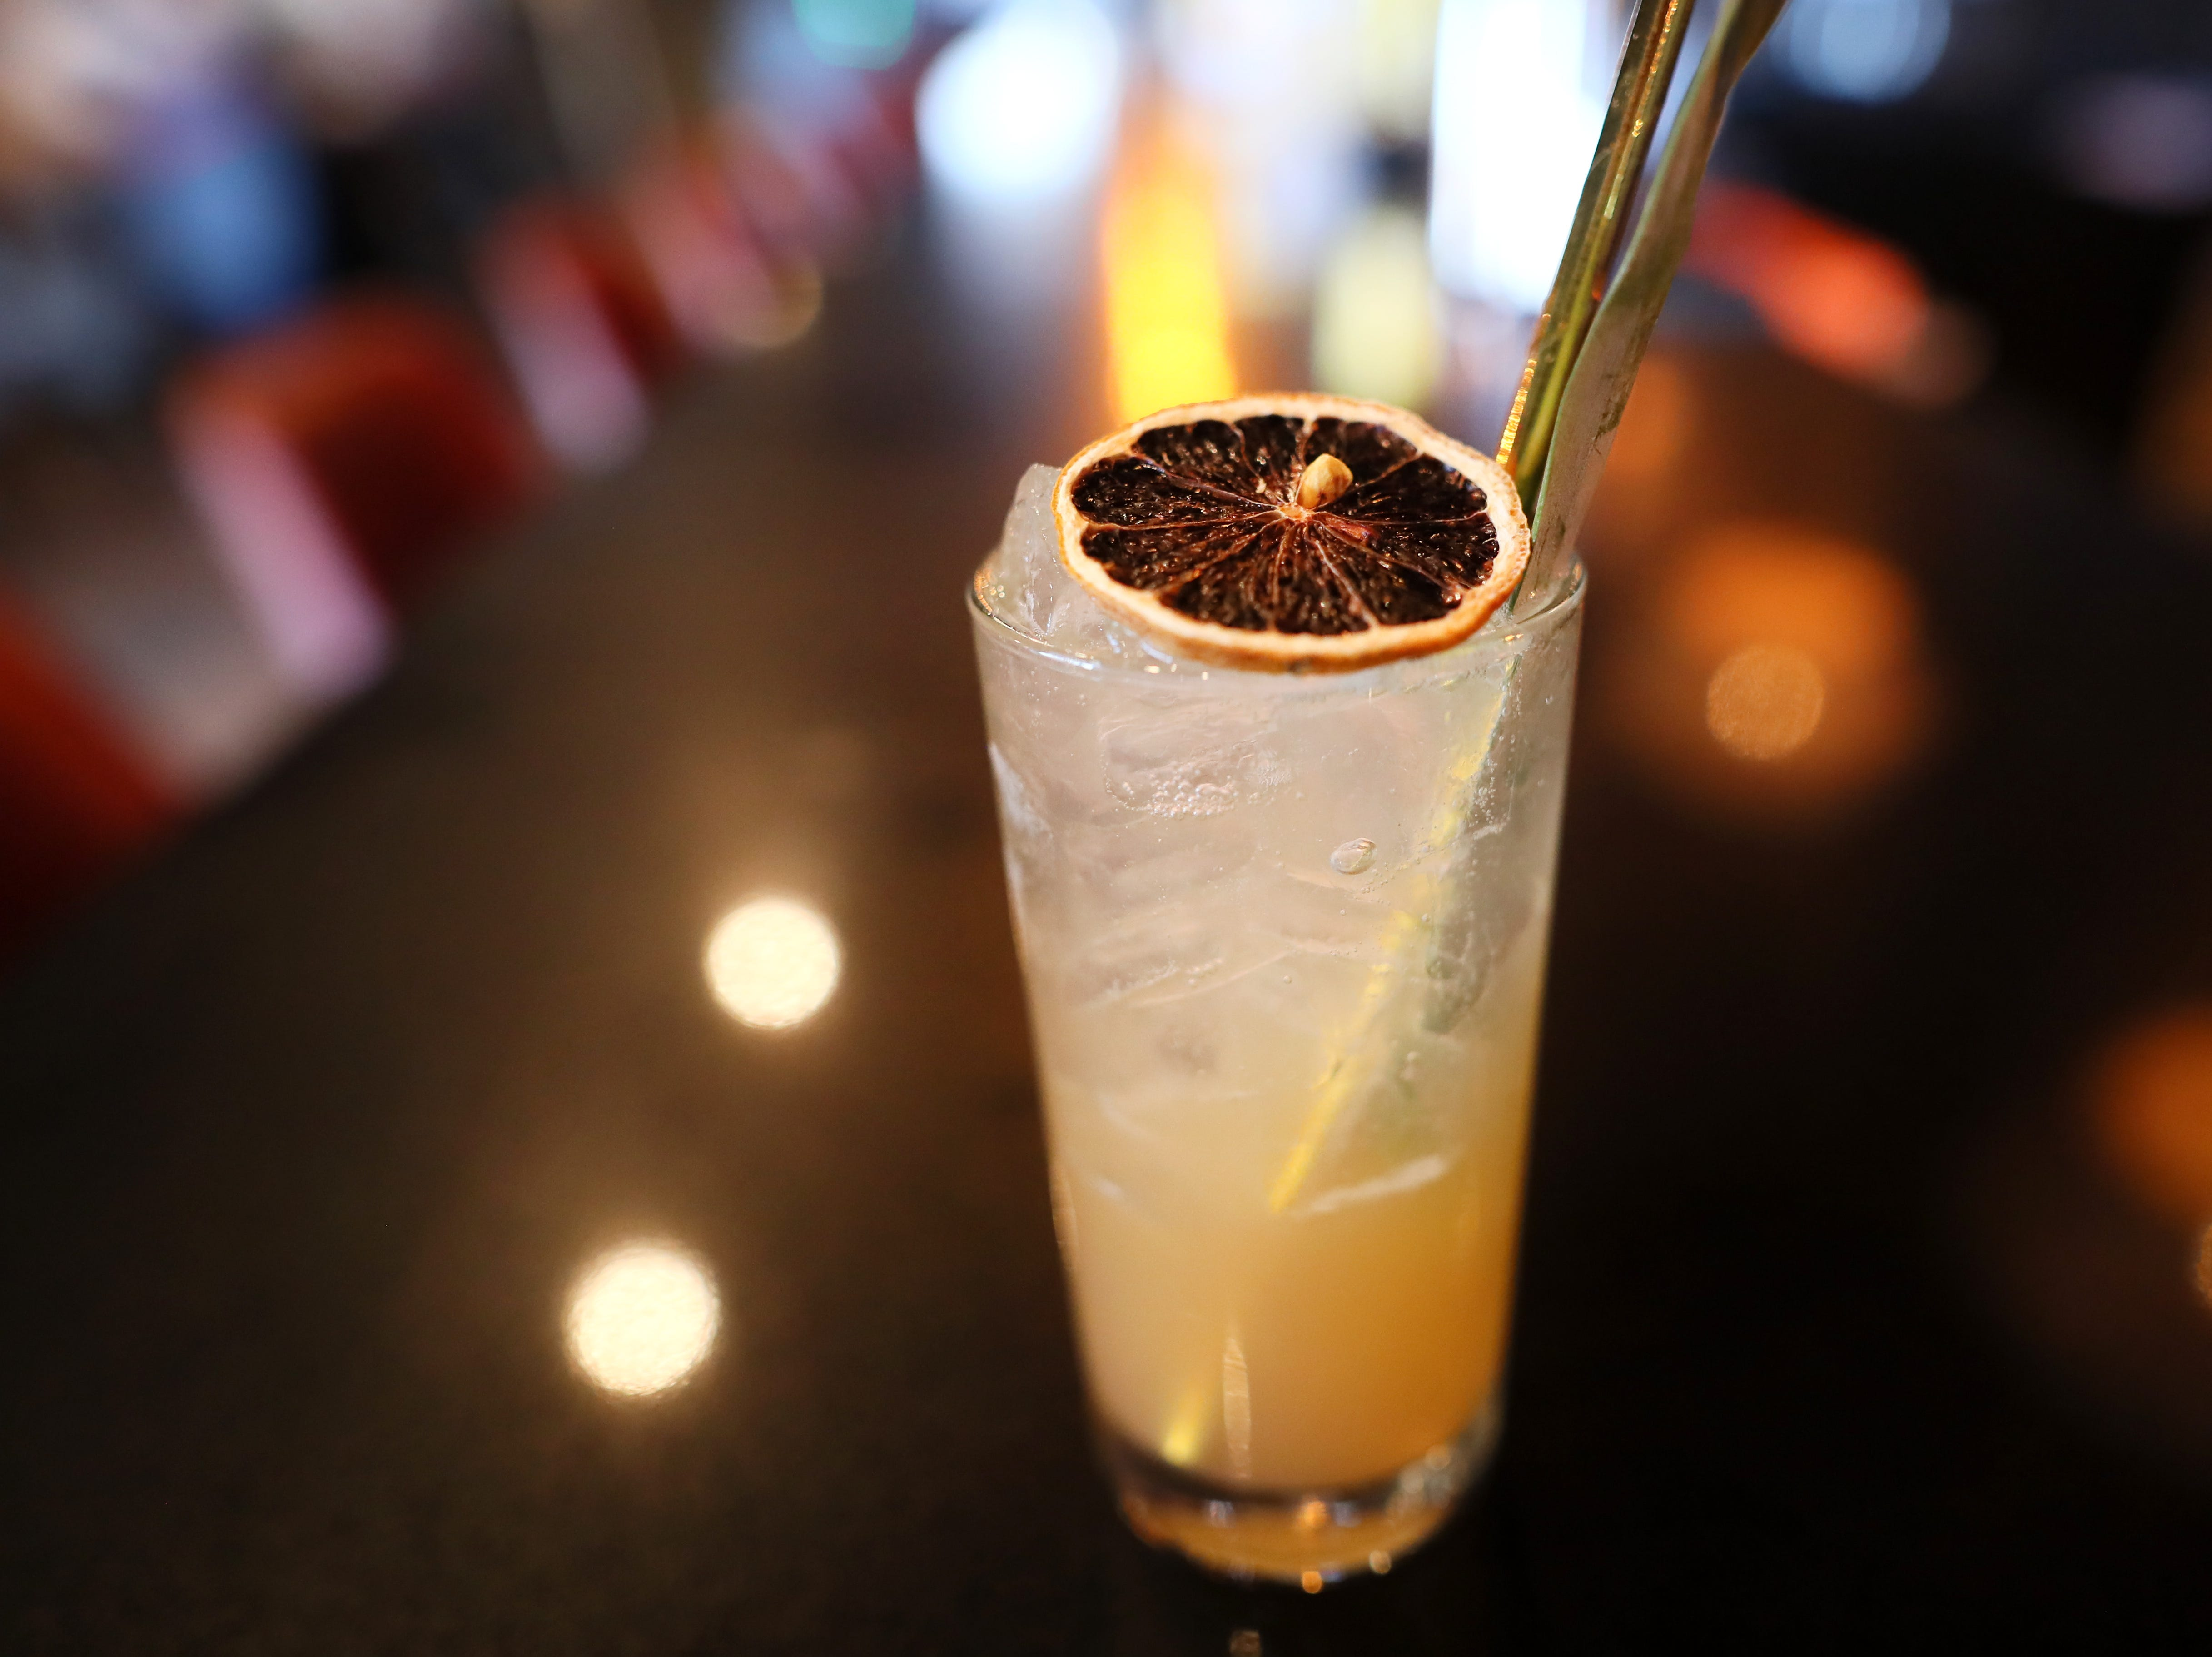 A Kimuri Mirror, red plum and clove shrub, hickory smoked pineapple juice and mineral water with a garnish of dehydrated lemon and pineapple leaf at Lucky Cat, a ramen shop on Broad Avenue which officially opened its door to the public on Friday, Jan. 25, 2019.